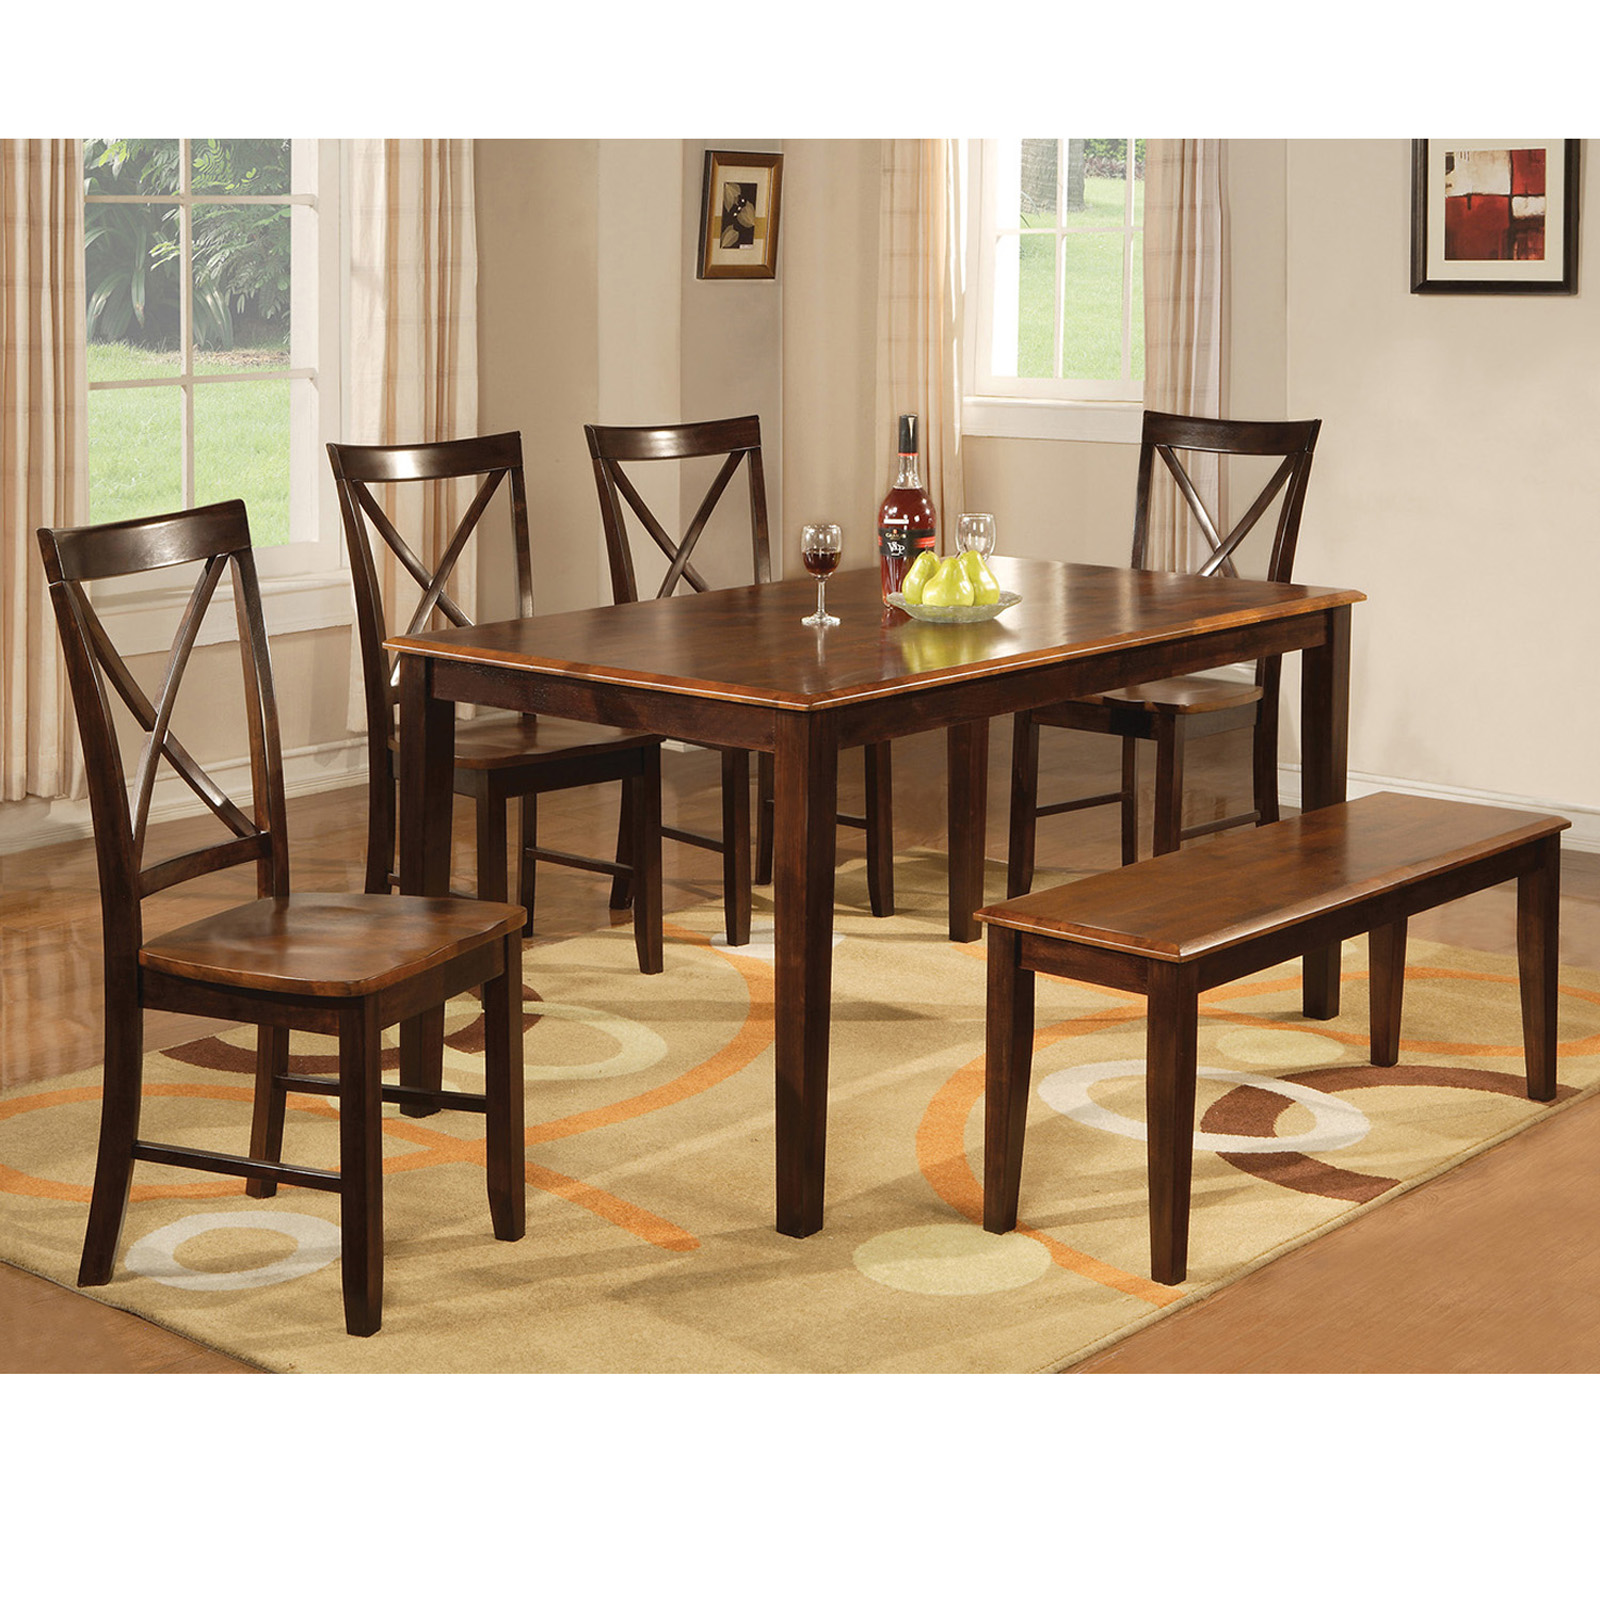 QUICK VIEW. Home Source Industries Perry 6 Piece Rectangular Dining Table  Set